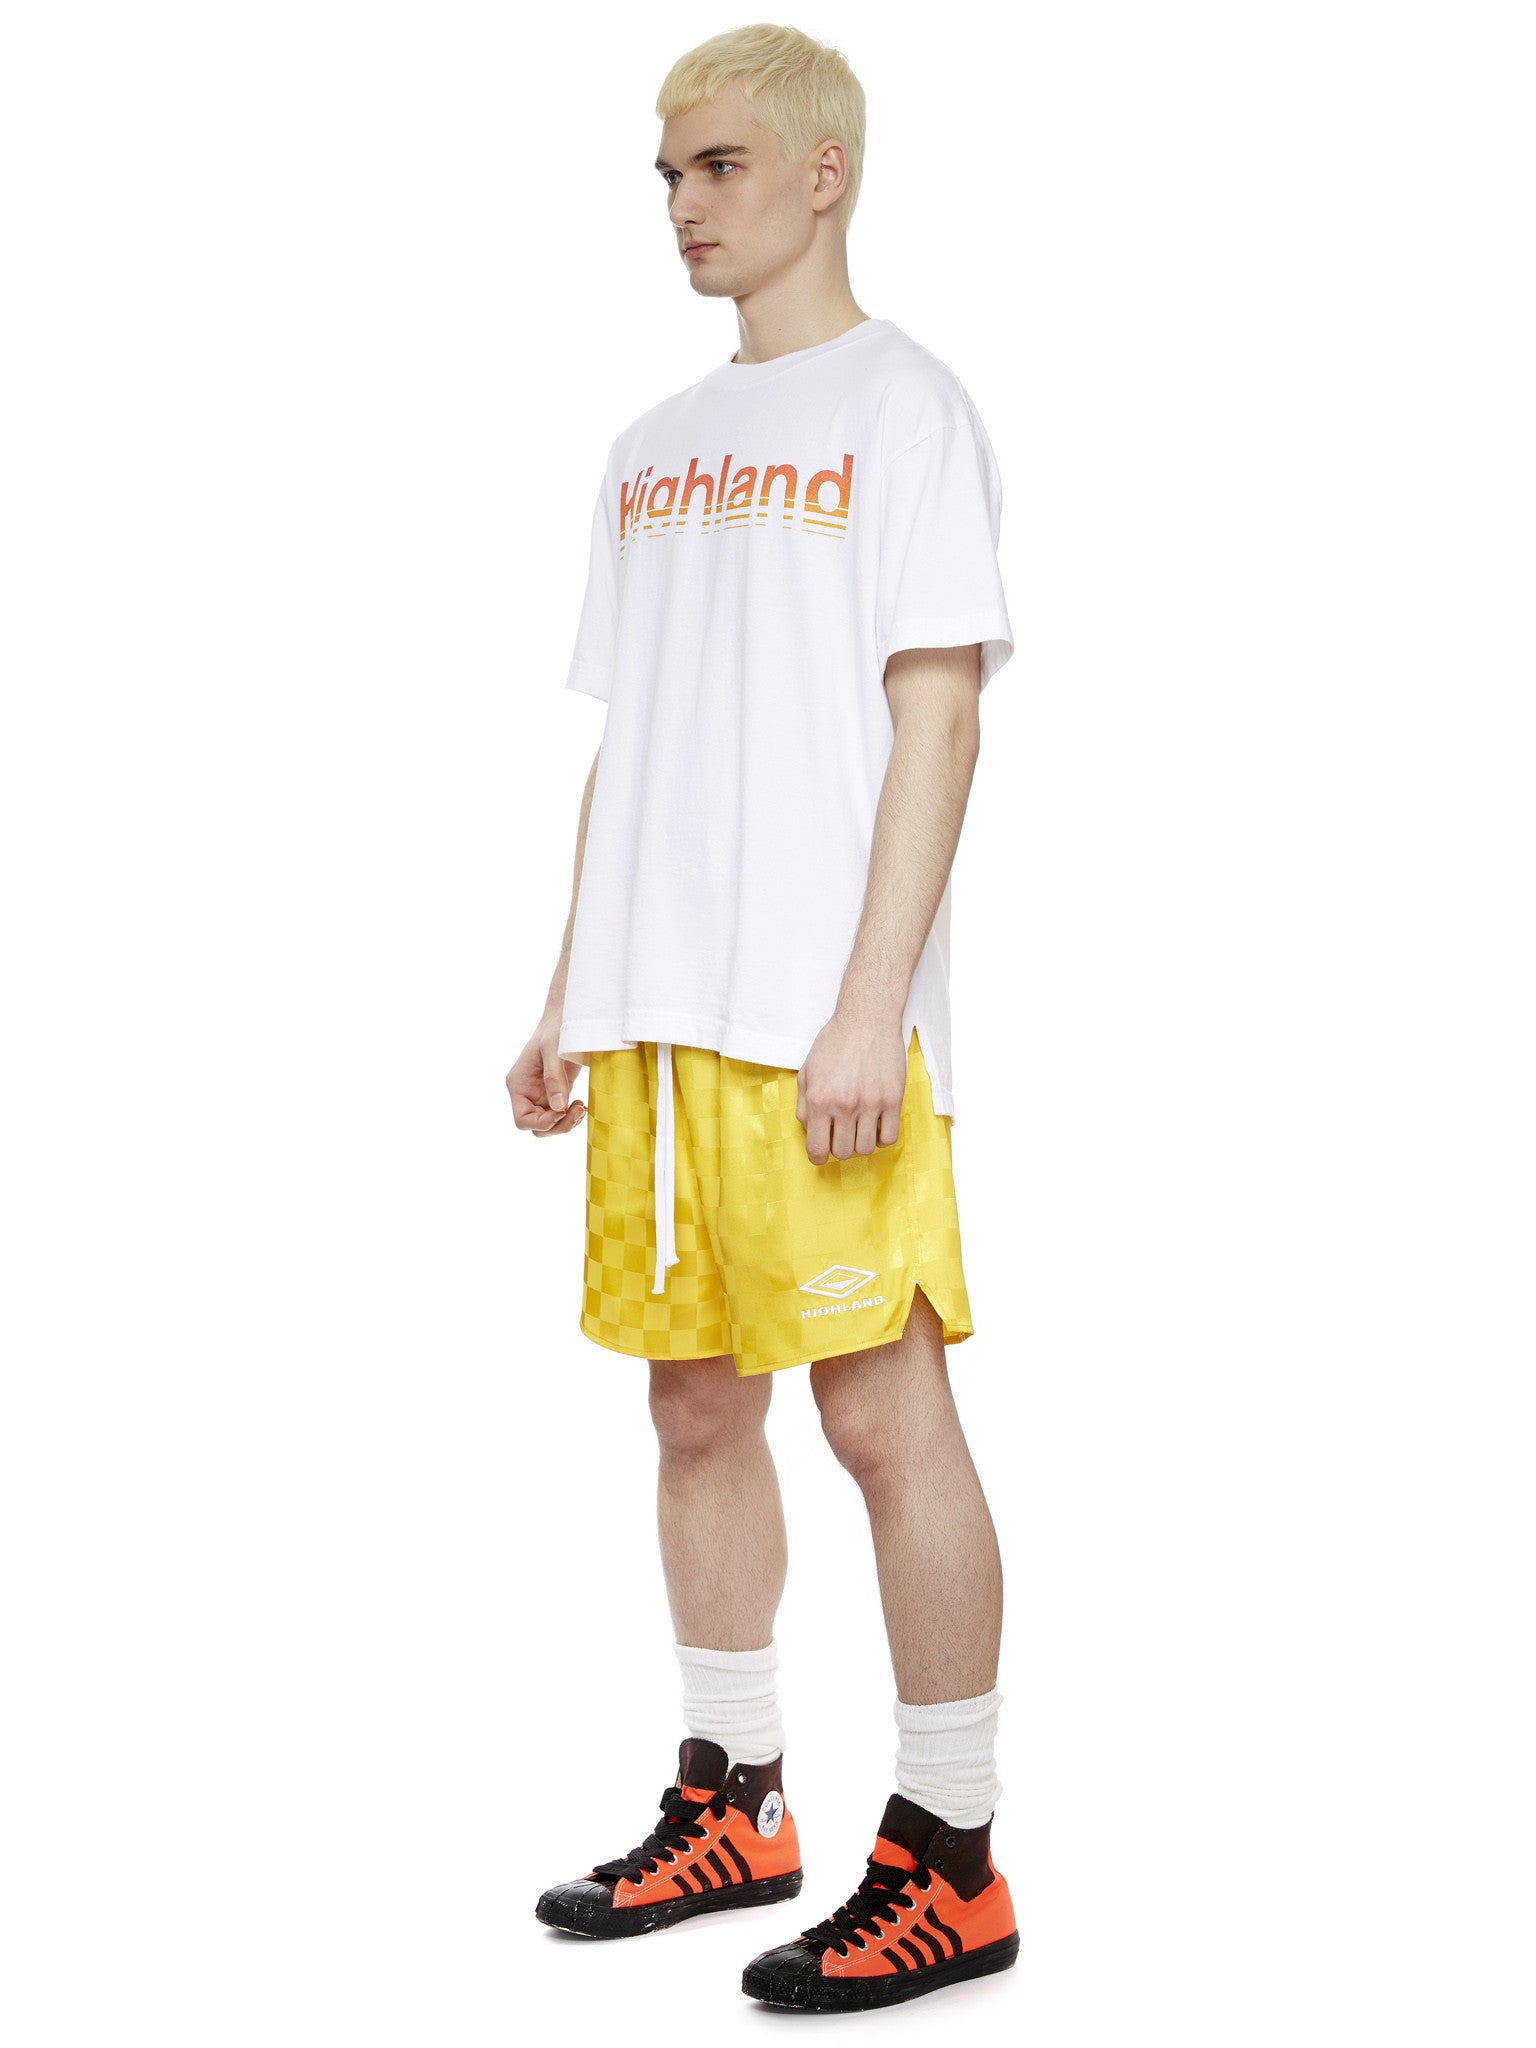 S/S Logo T-Shirt in White/Flame Gradient